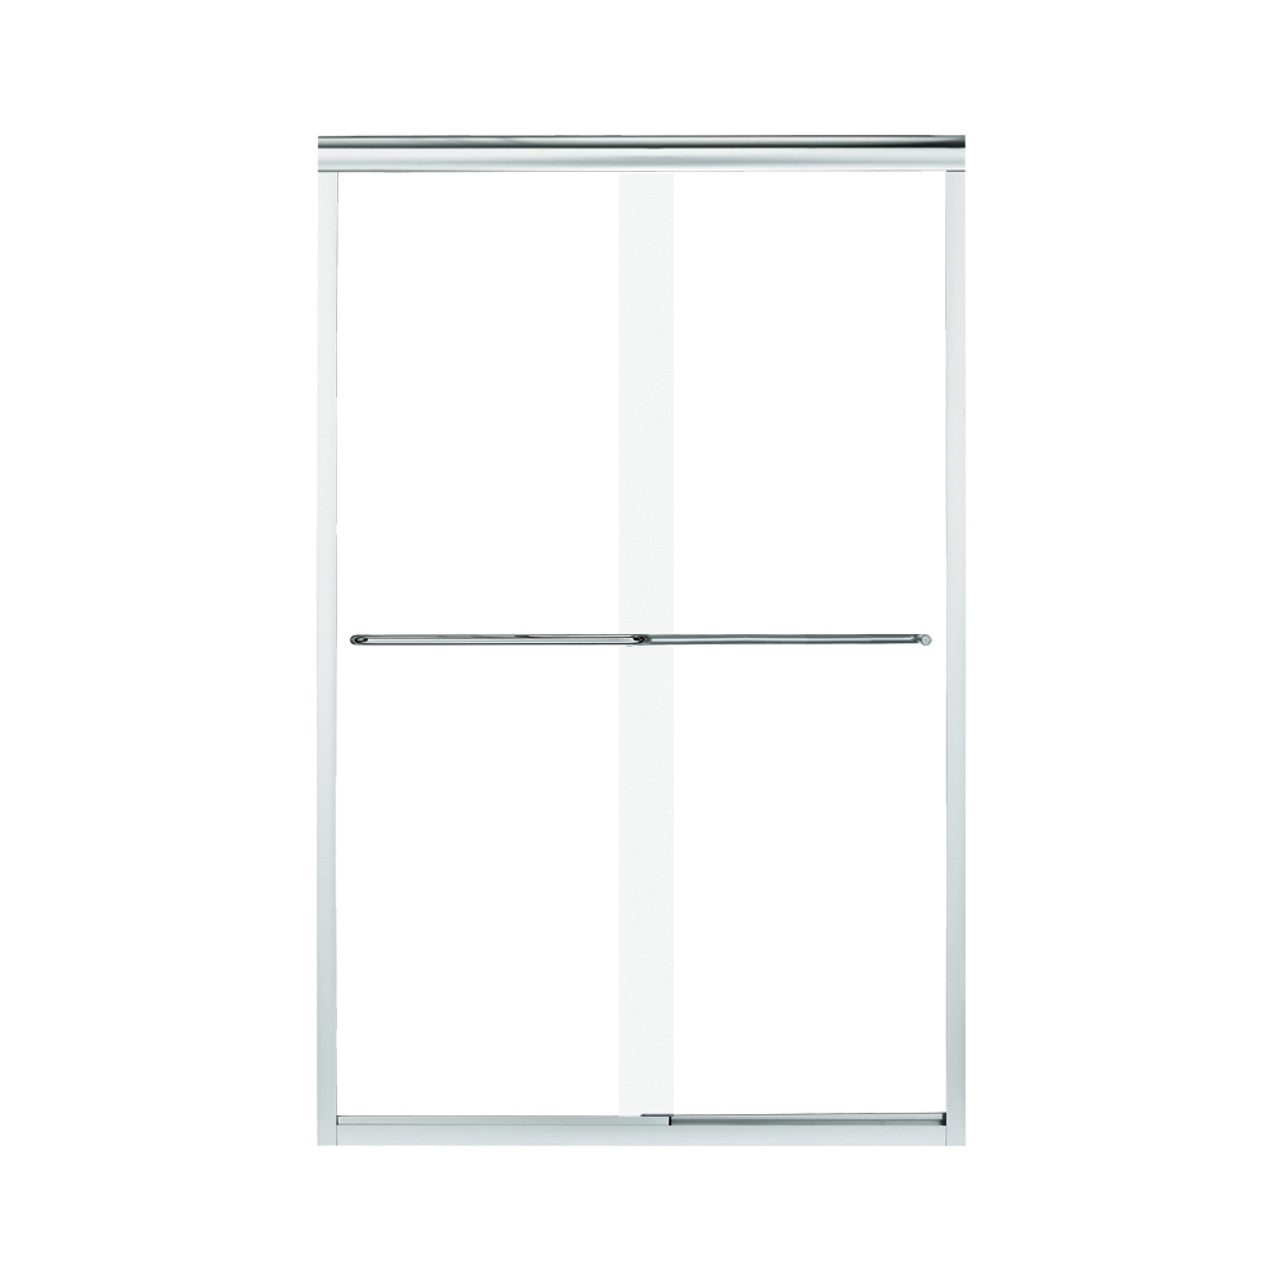 Sterling 5475 48s G05 Finesse 42 625 To 47 625 In X 70 0625 In Frameless Sliding Alcove Shower Door With Clear Glass